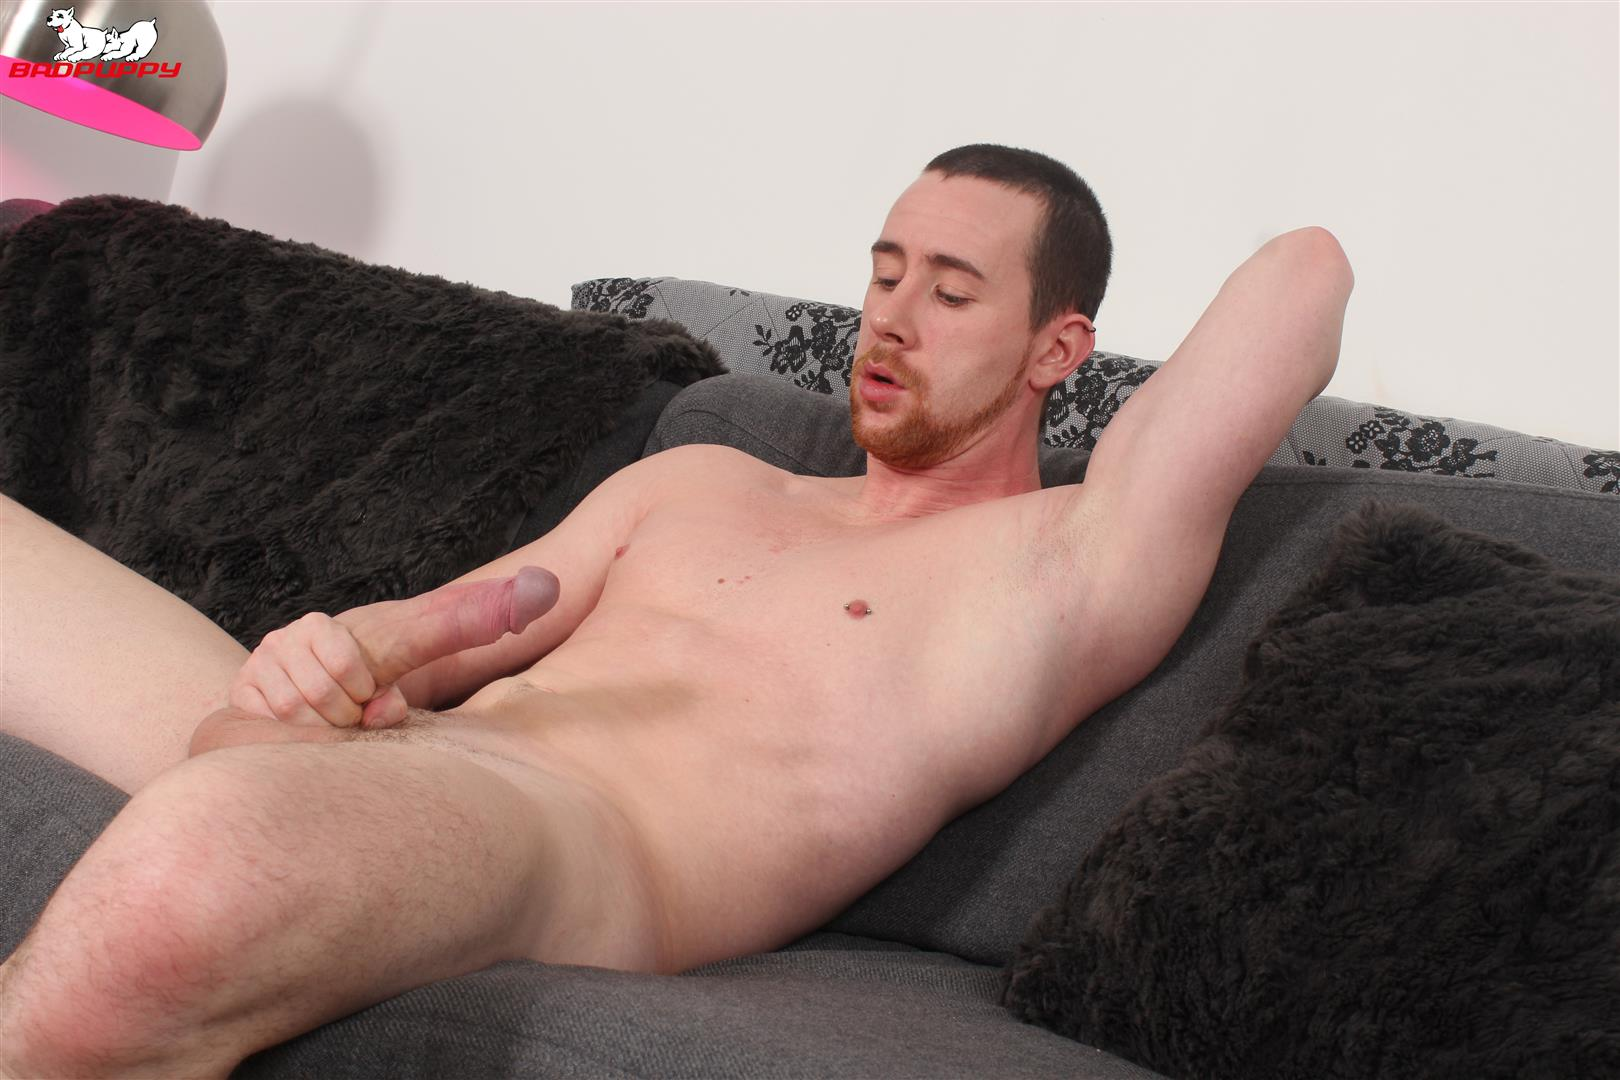 Badpuppy-Anthony-Naylor-Big-Uncut-Cock-Masturbation-14 Sexy British Amateur Plays With His Big Uncut Horse Cock